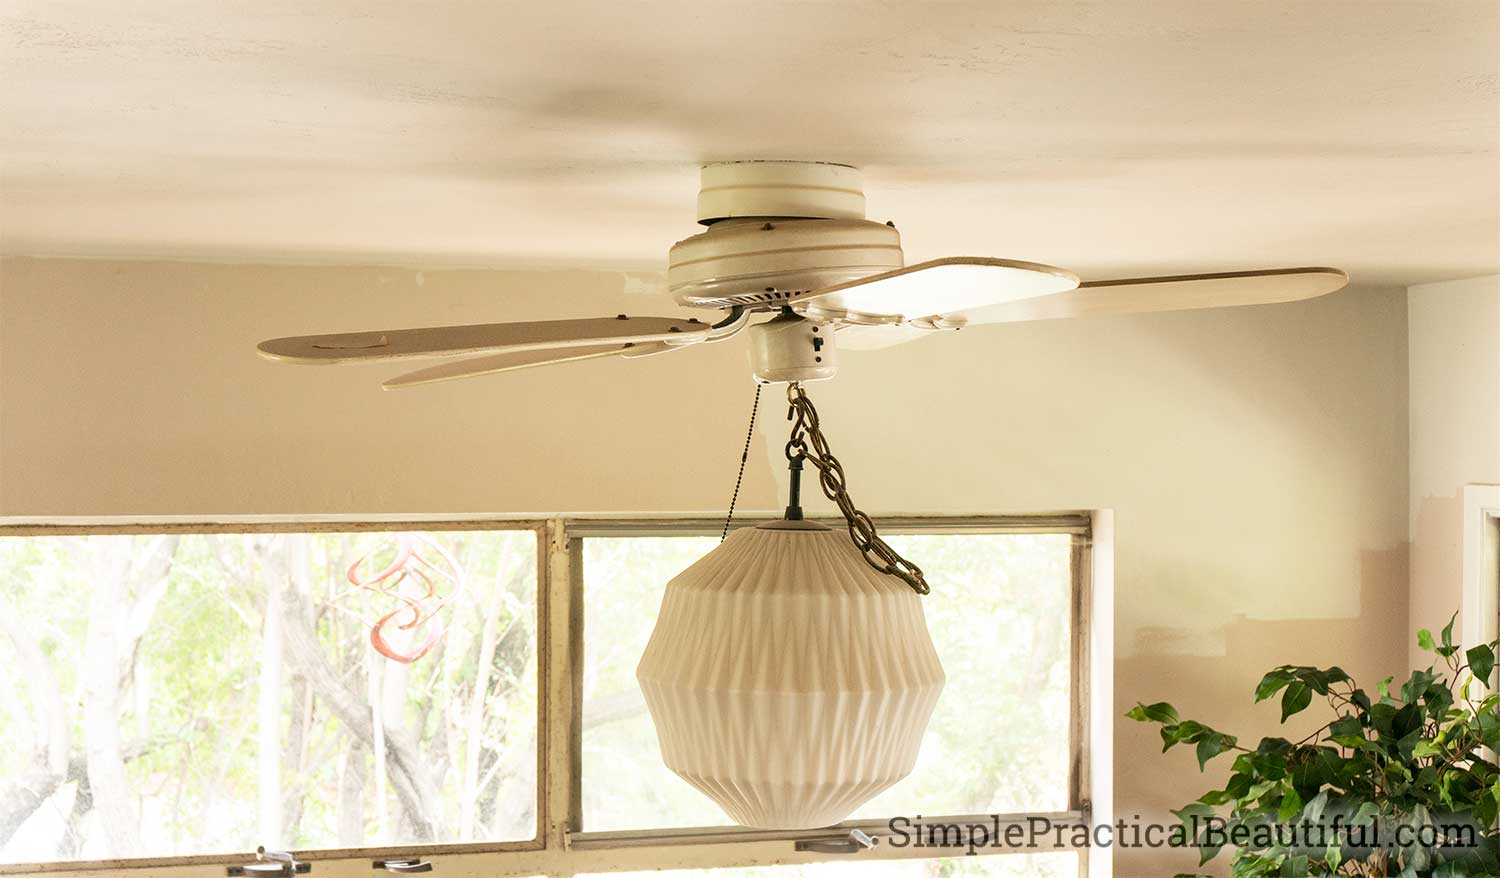 How to remove an old fan and light fixture and replace it with a new modern pendant light